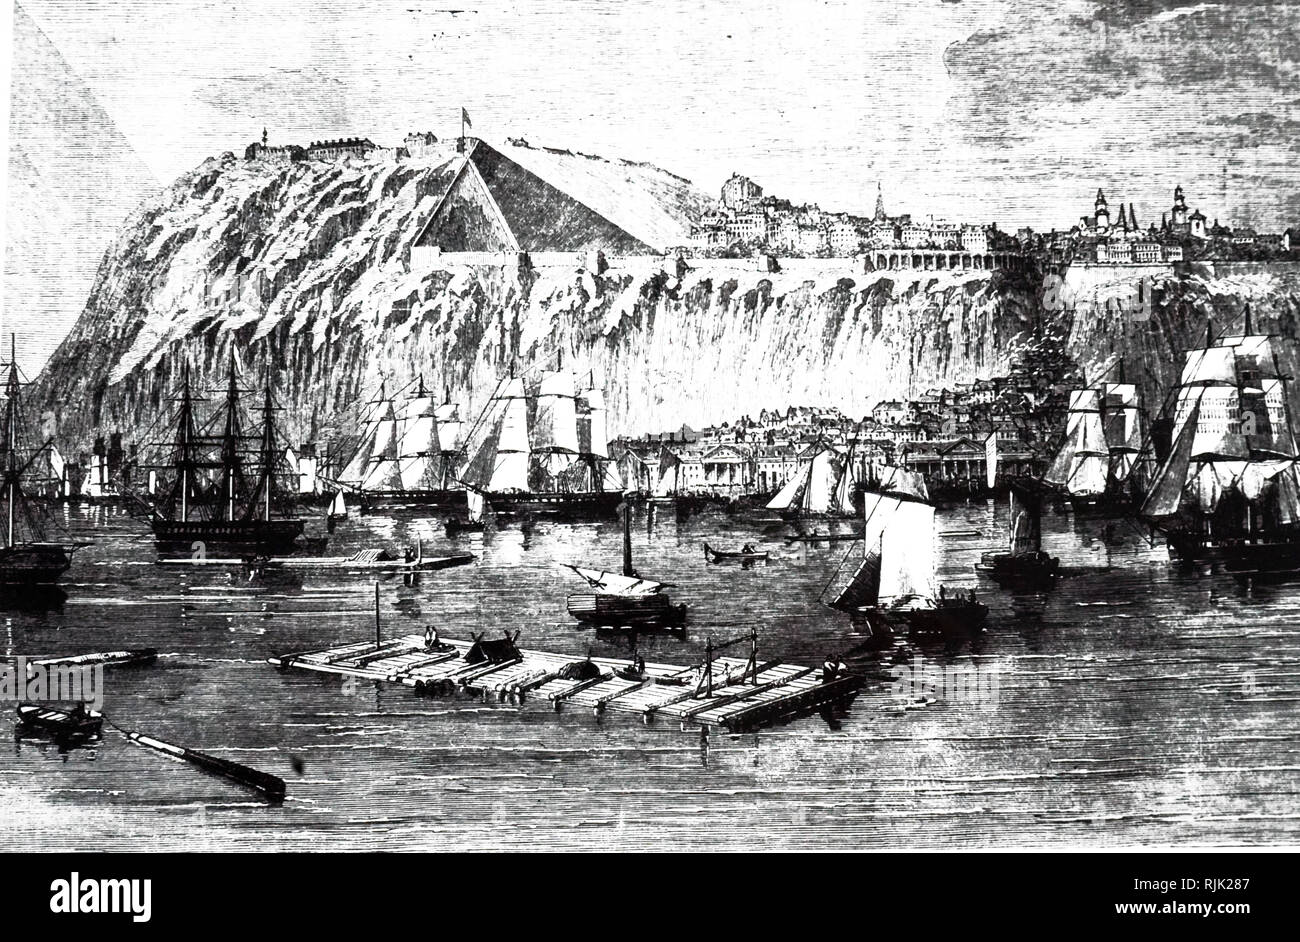 An engraving depicting a port in Quebec. Dated 19th century - Stock Image